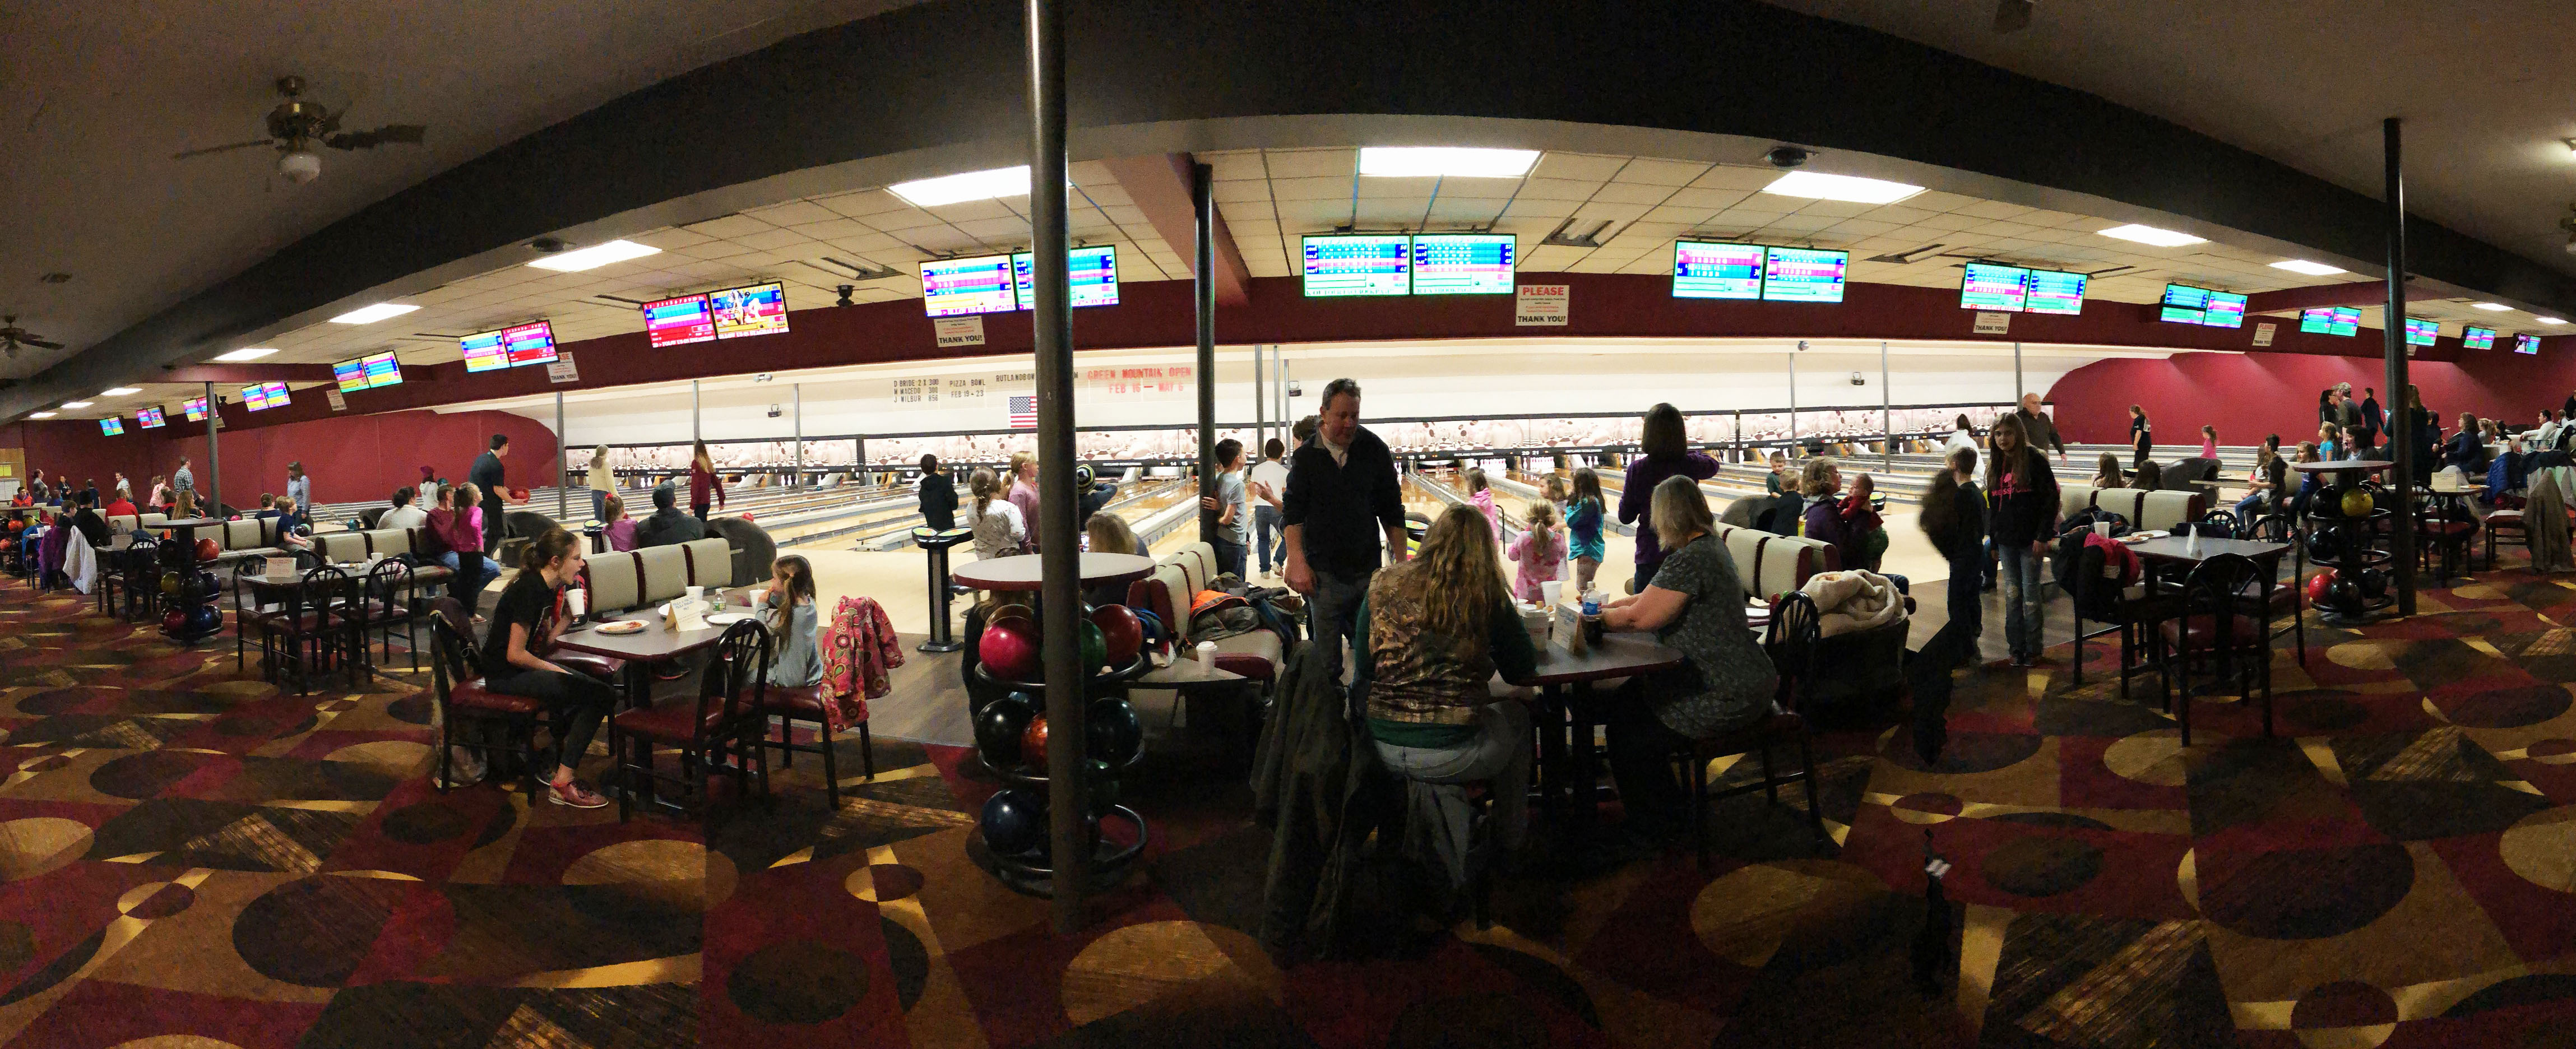 Rutland Bowlerama is the Ultimate in Family Entertainment